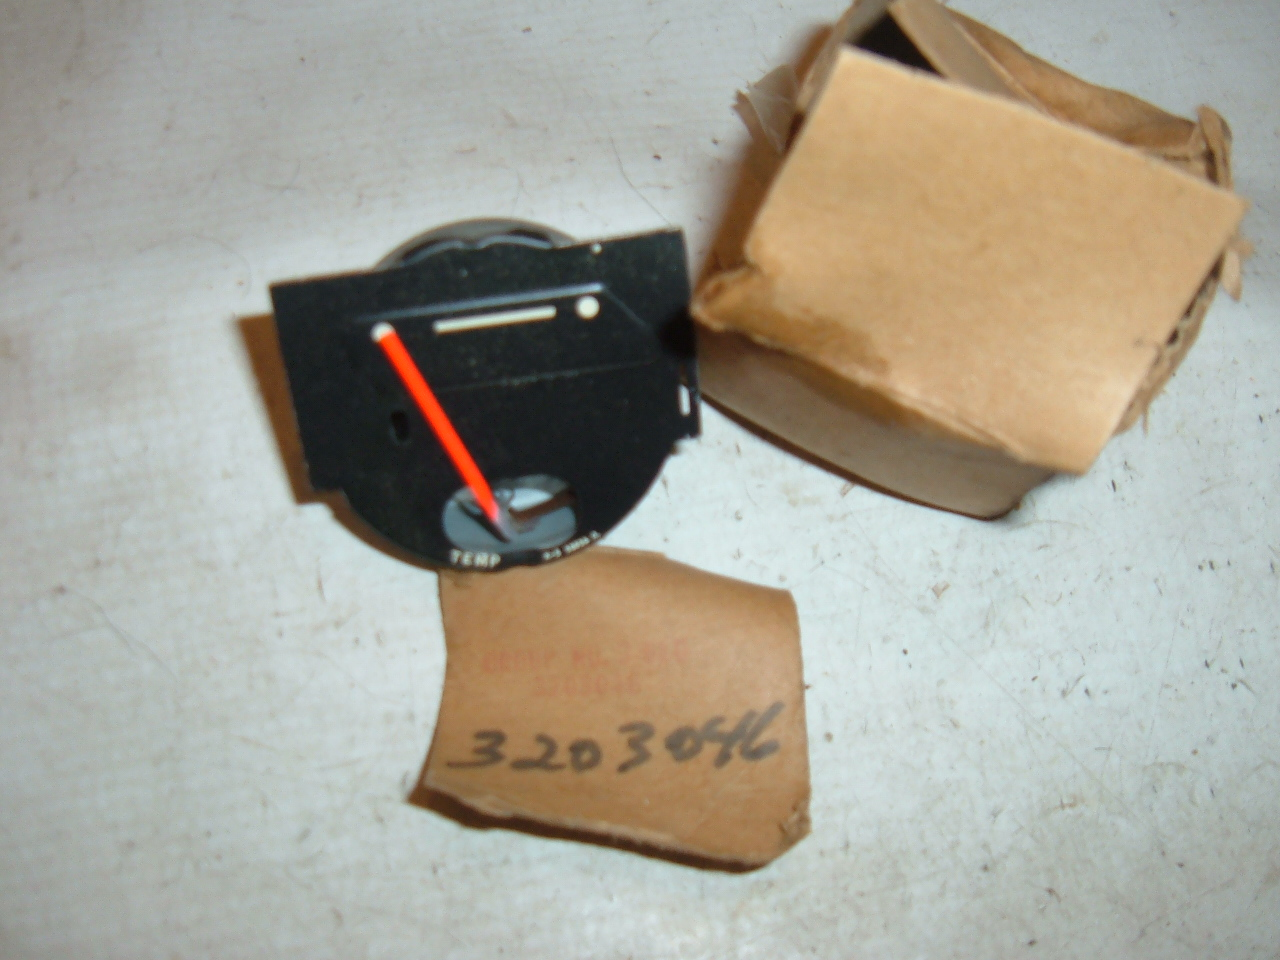 View Product1962 rambler classic ambassador temperature gauge dash unit nos # 3203046 (z 3203046)